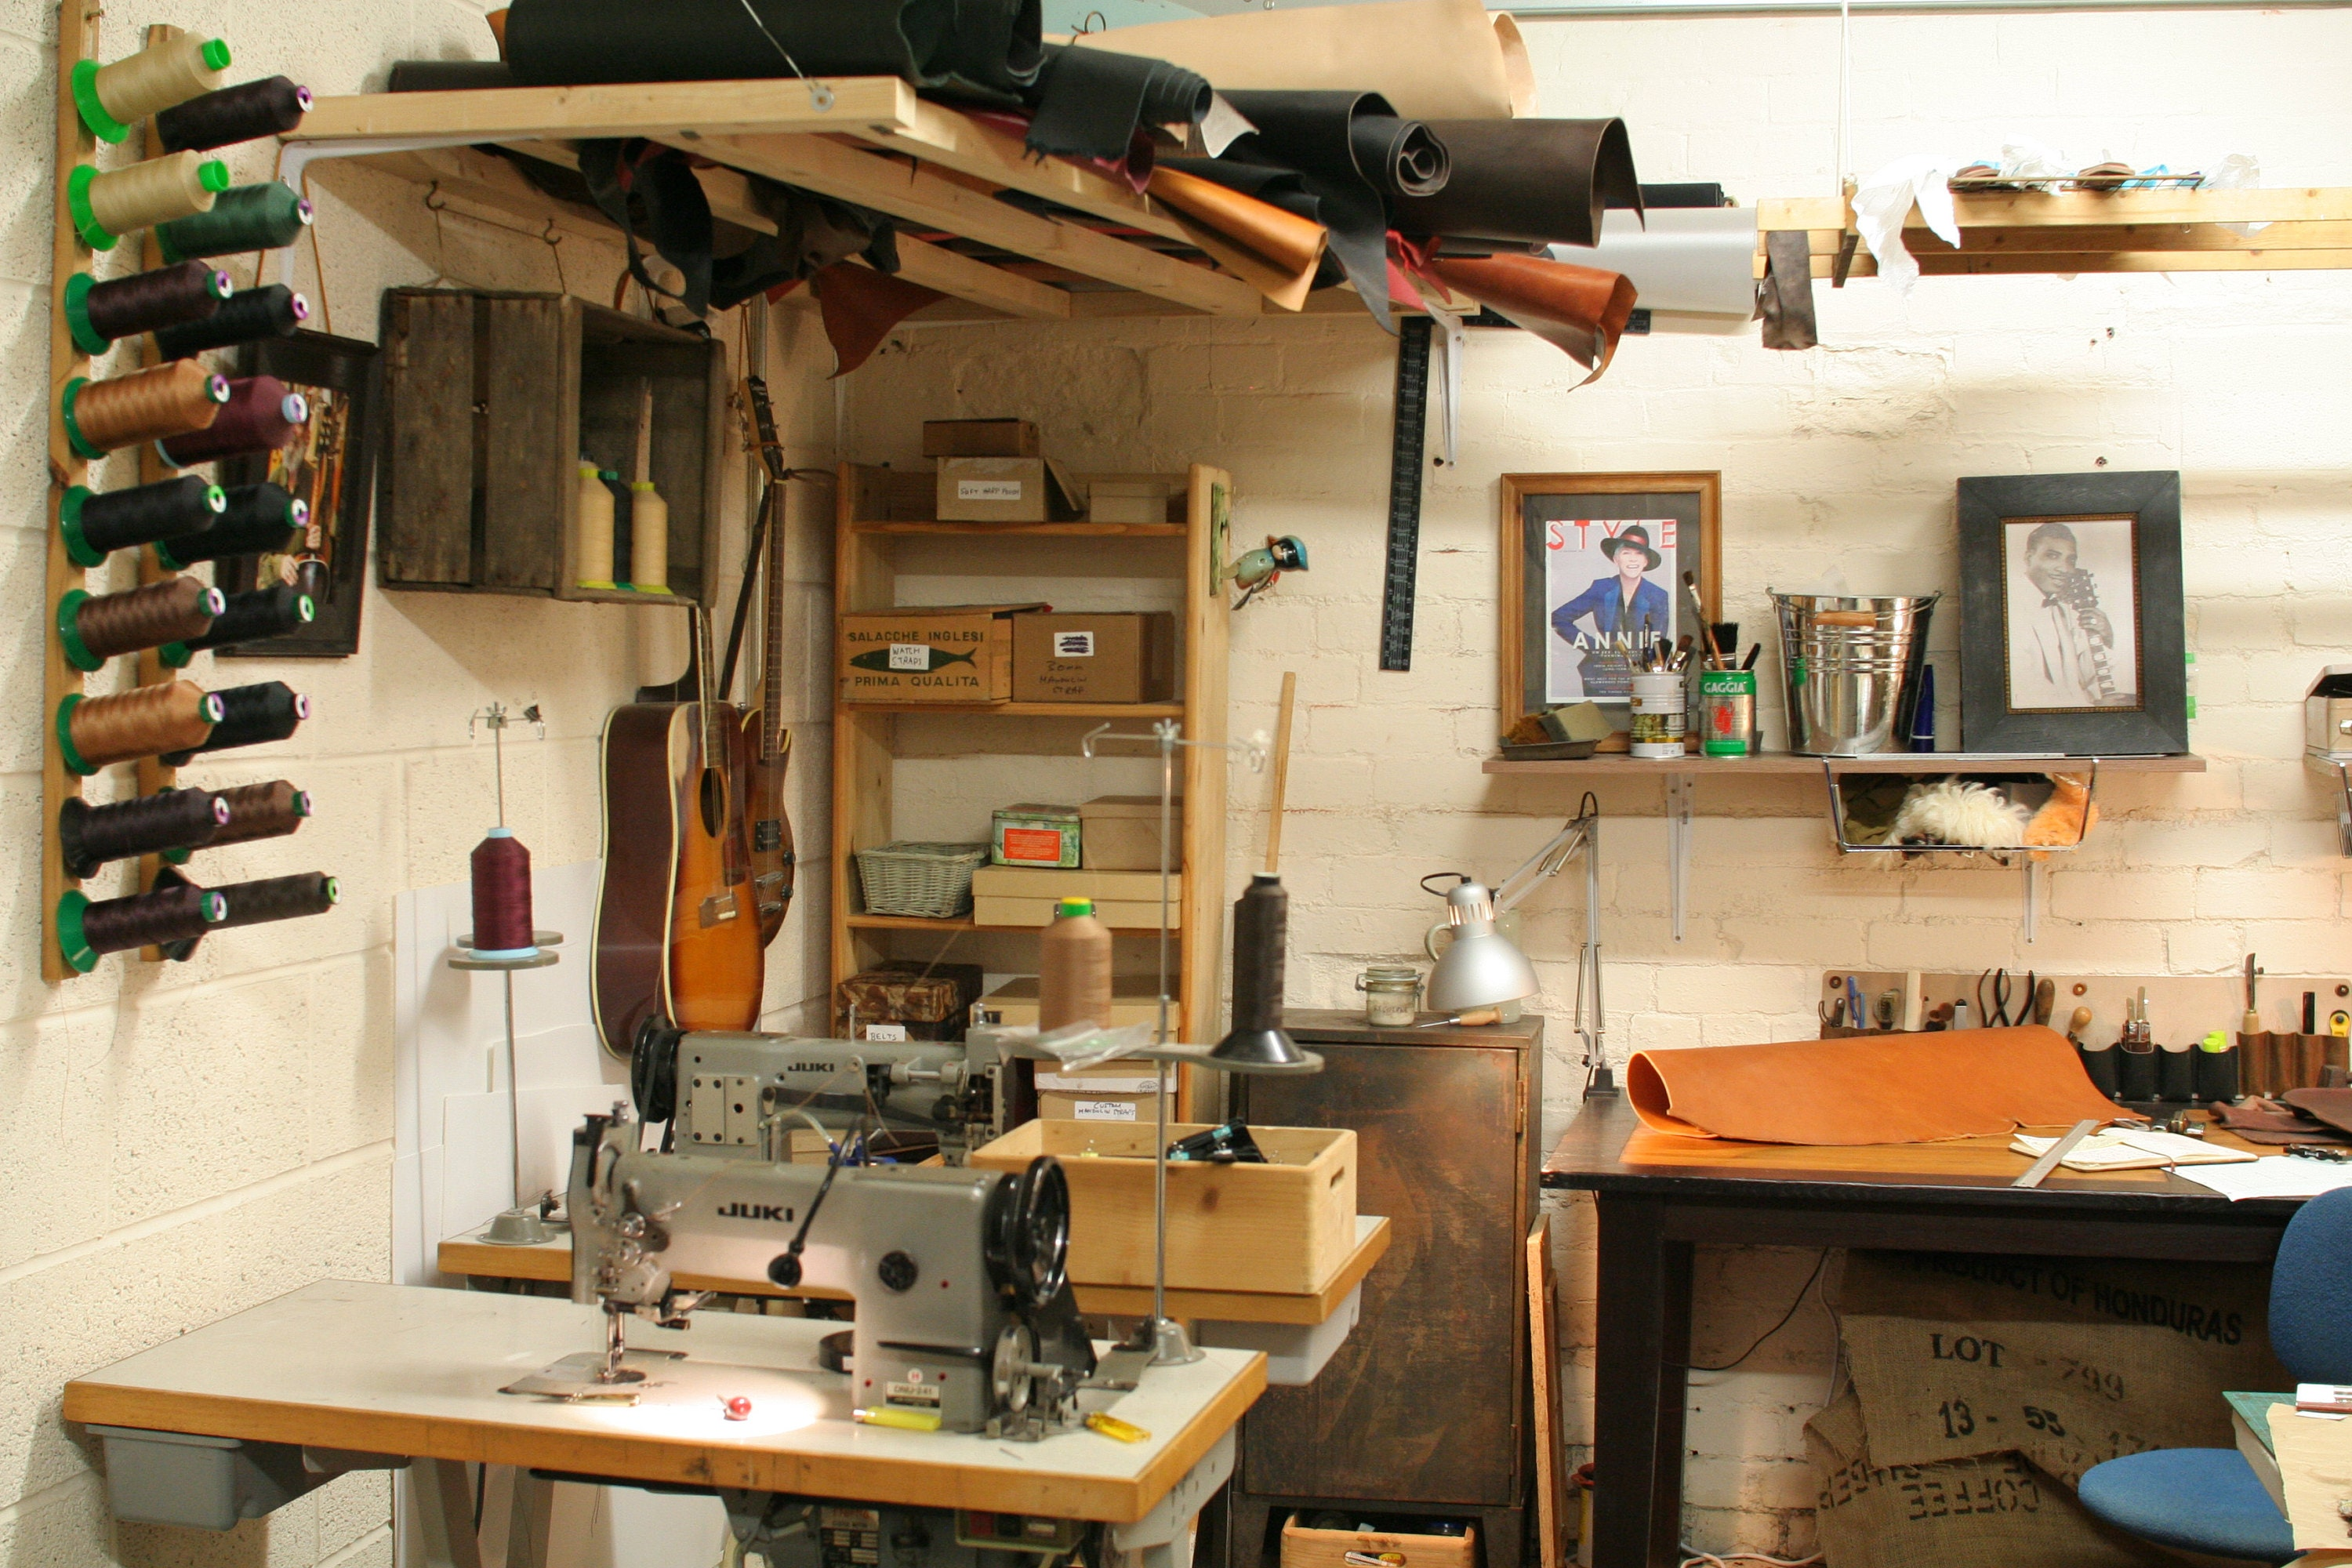 The Pinegrove Leather workshop